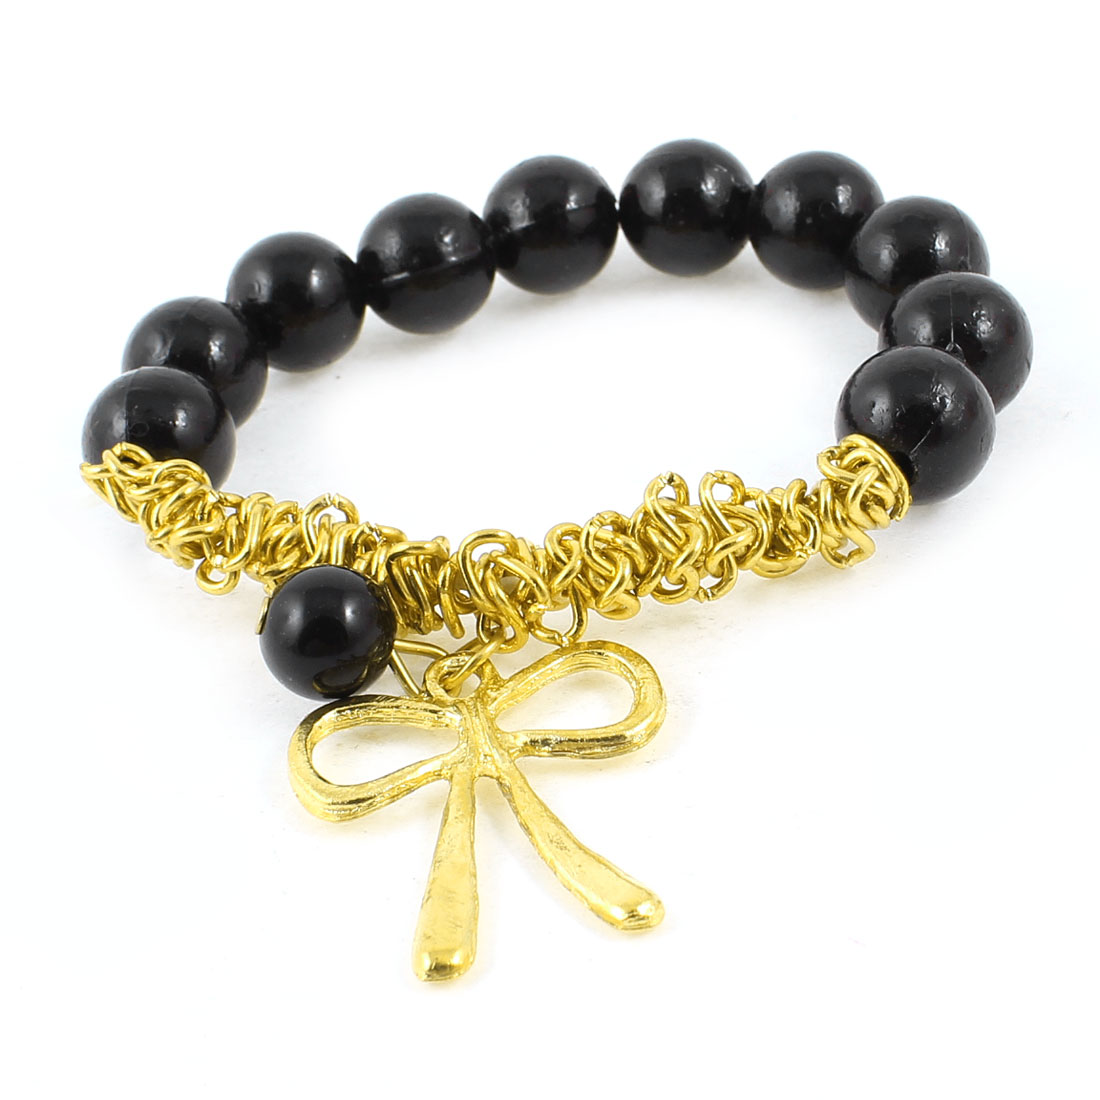 Gold Tone Bowknot Ornament Black Faux Pearl Elastic Charm Bracelet for Woman Girl